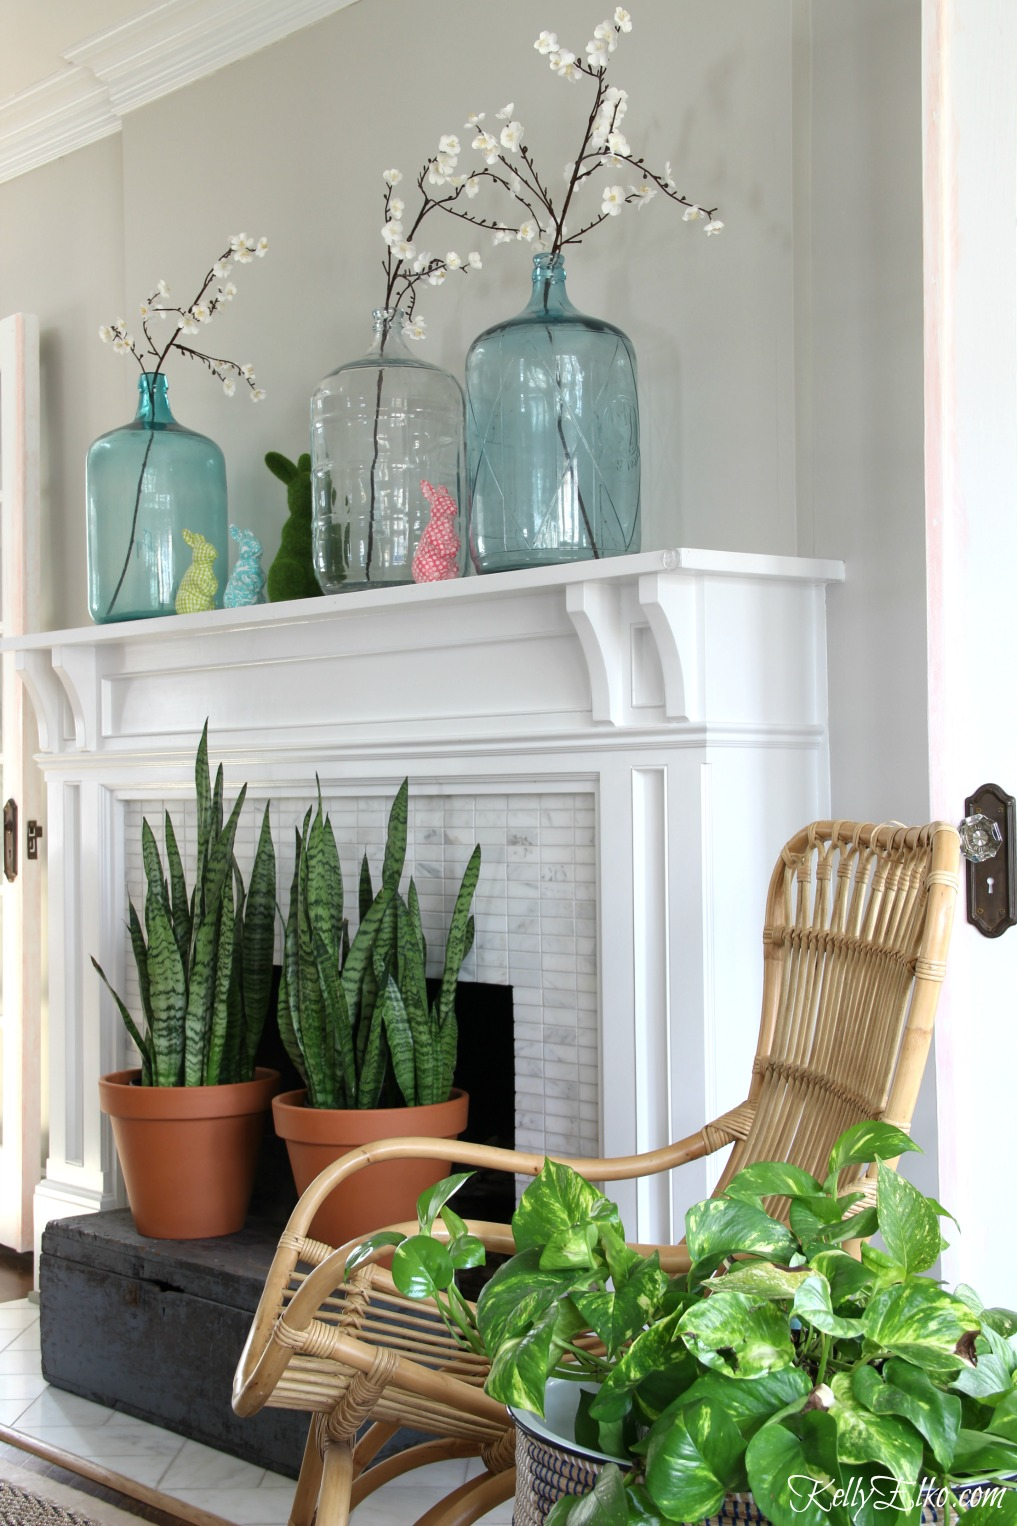 25 Spring Decorating Ideas and My Spring Mantel - Kelly Elko